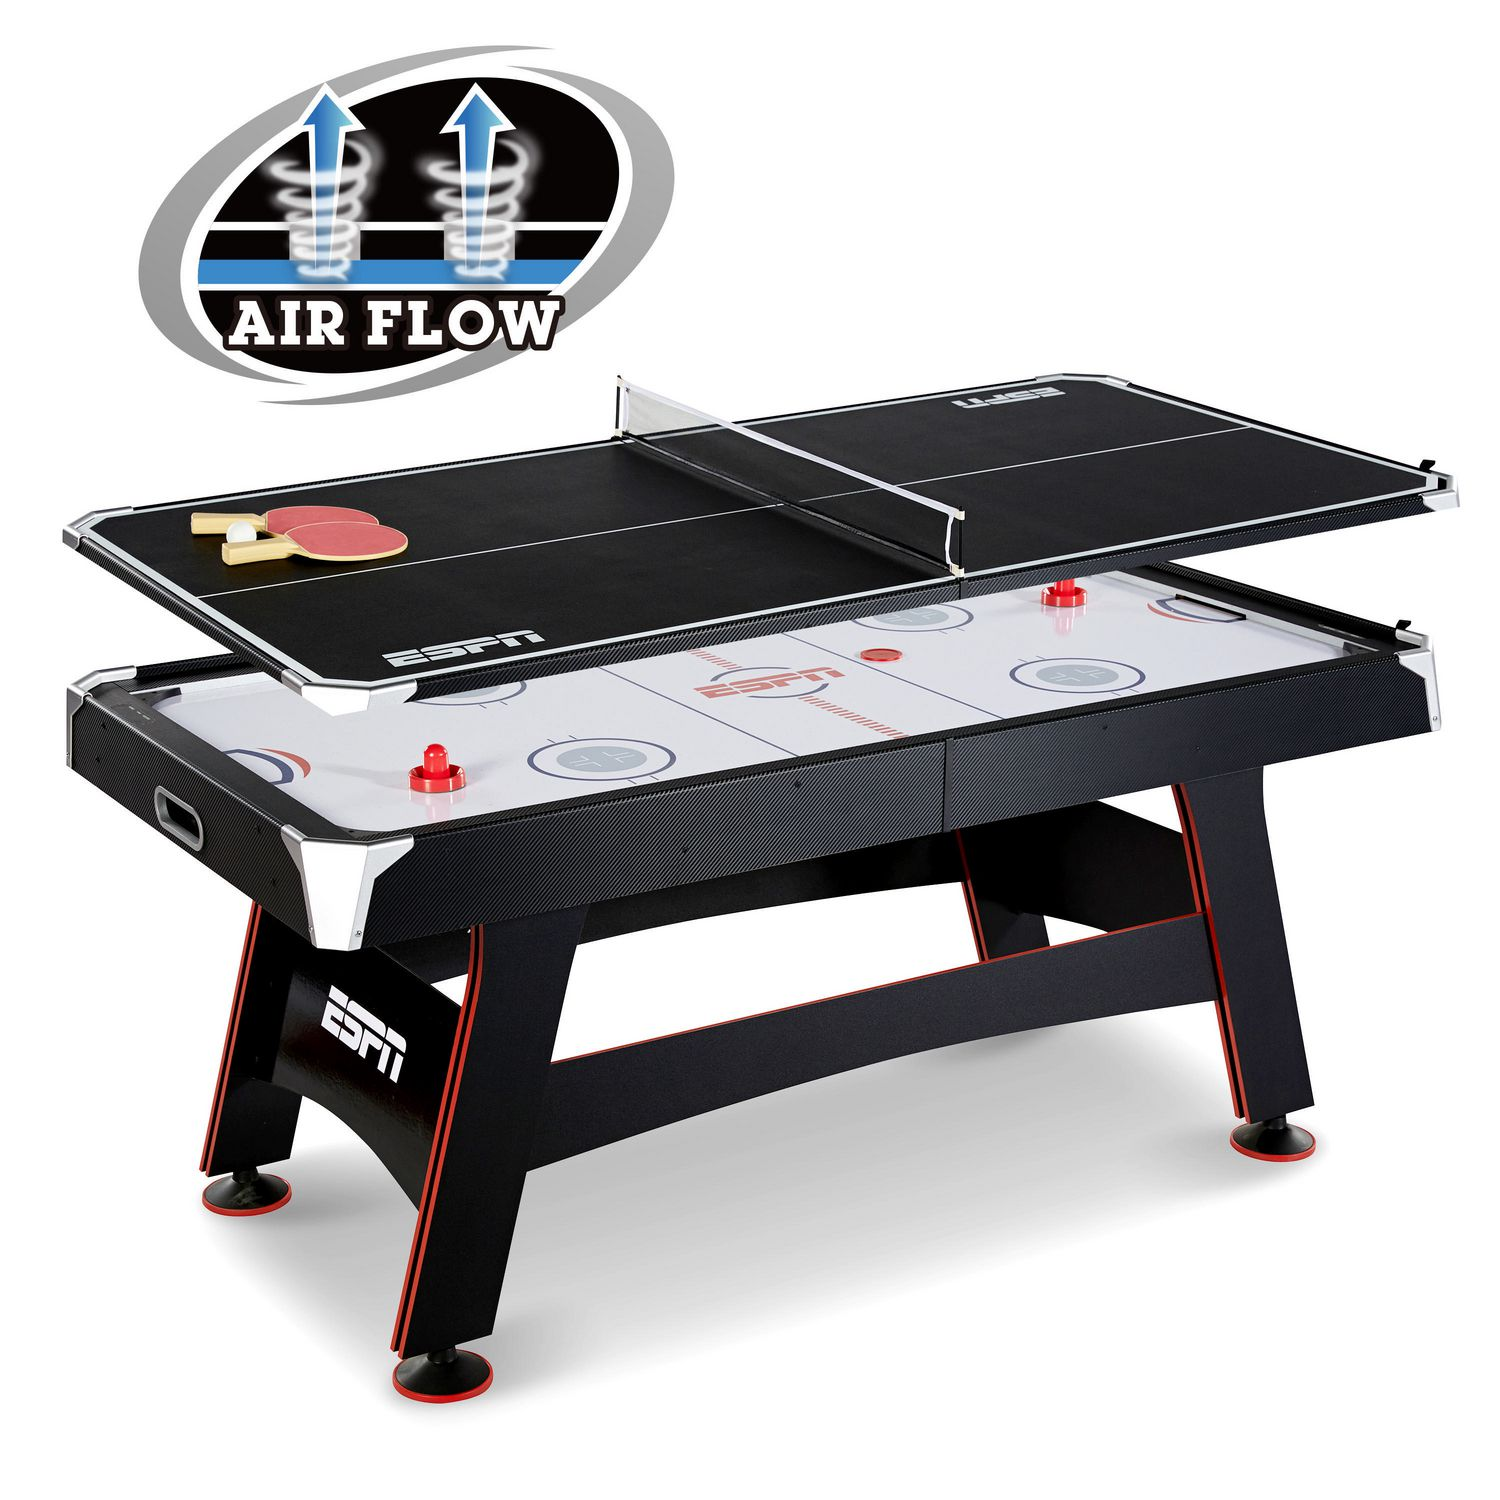 ESPN's Air Hockey and Table Tennis Game